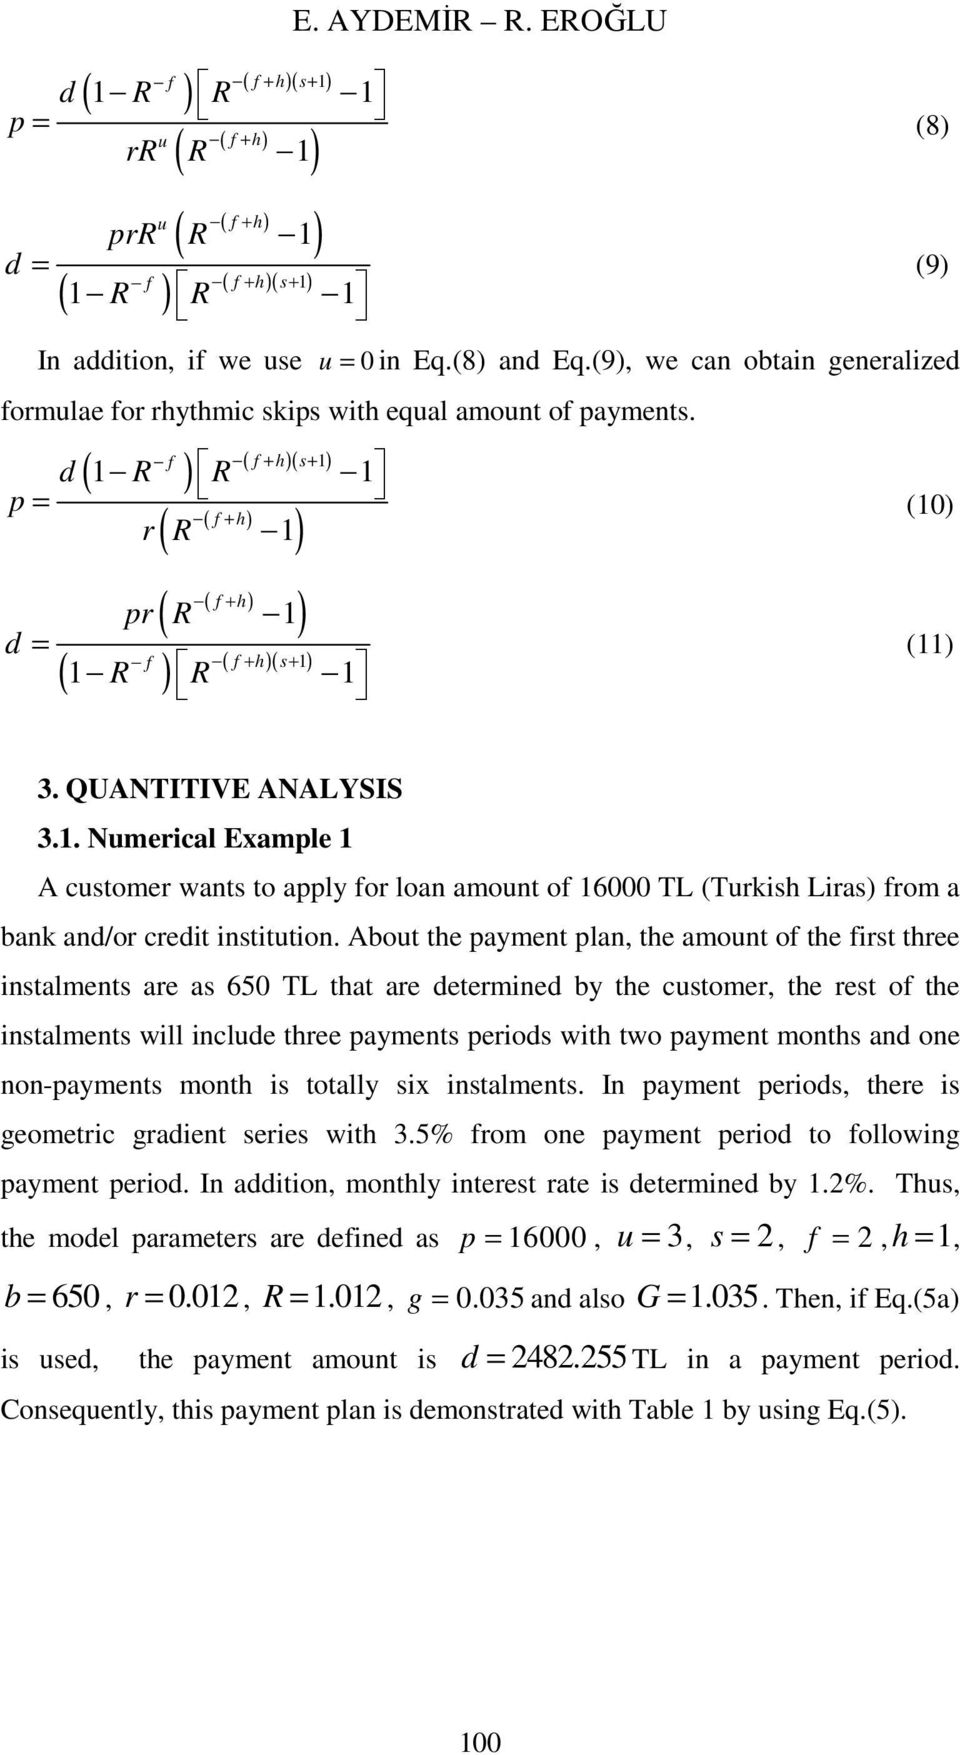 QUANTITIVE ANALYSIS 3.1. Nmerical Example 1 A cstomer wants to apply for loan amont of 16000 TL (Trkish Liras) from a bank and/or credit instittion.